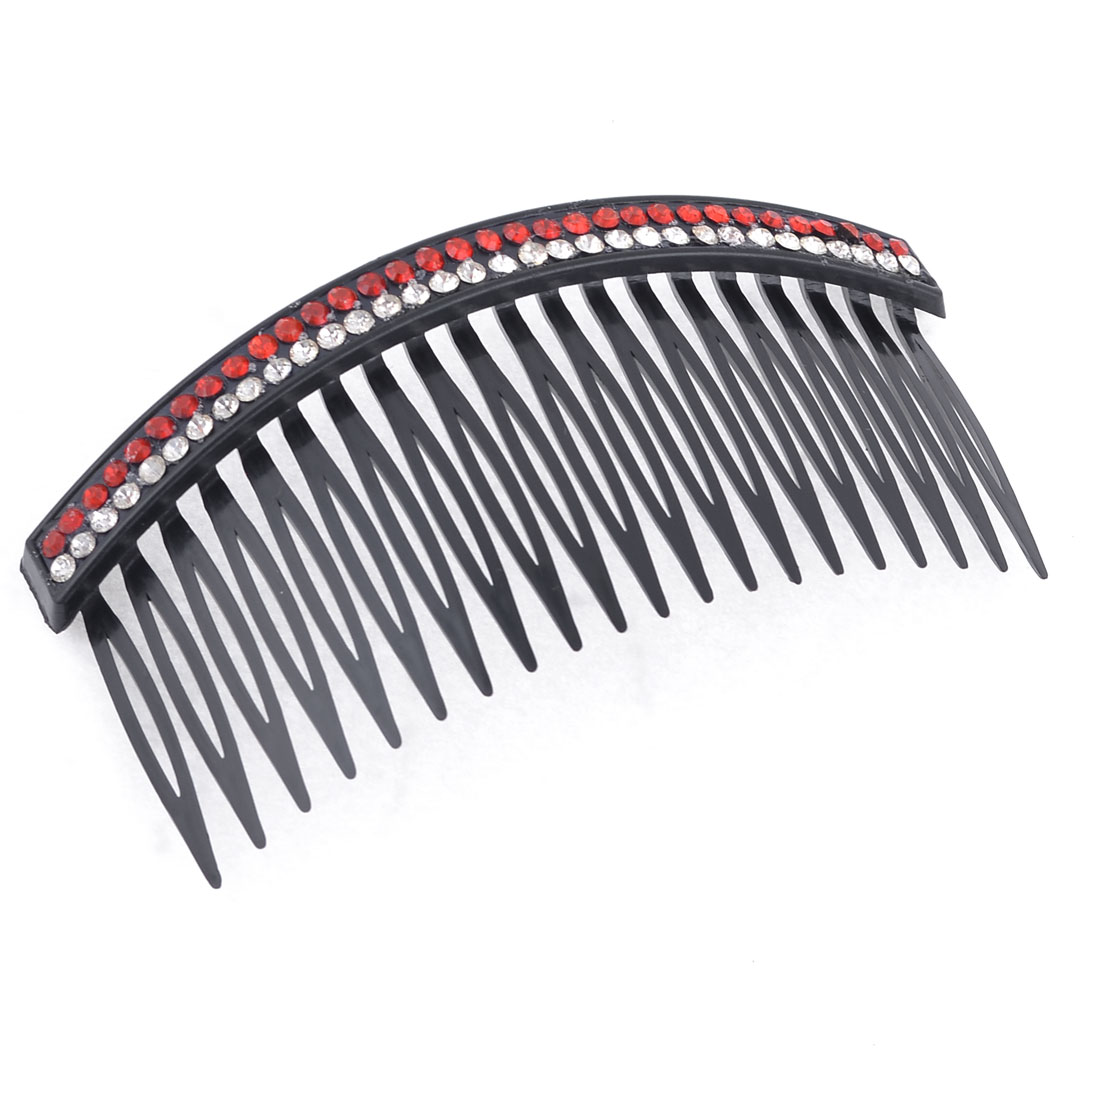 Double Row Red Bling Rhinestones Accent Comb Hair Clip Clamp Black for Women